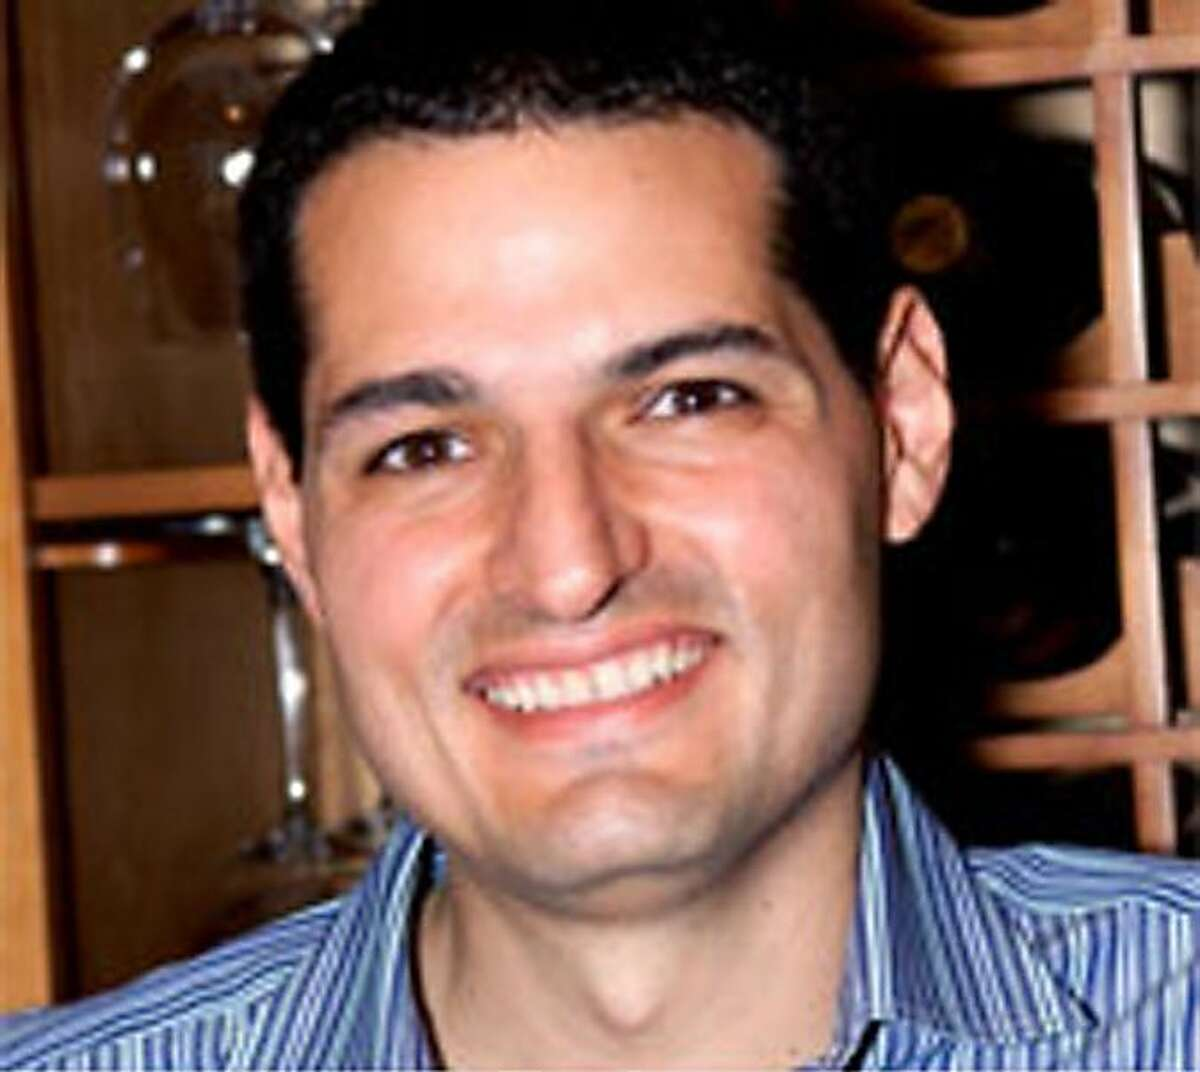 The industry is watching how scores from Antonio Galloni, pictured, will compare with those of Robert Parker.